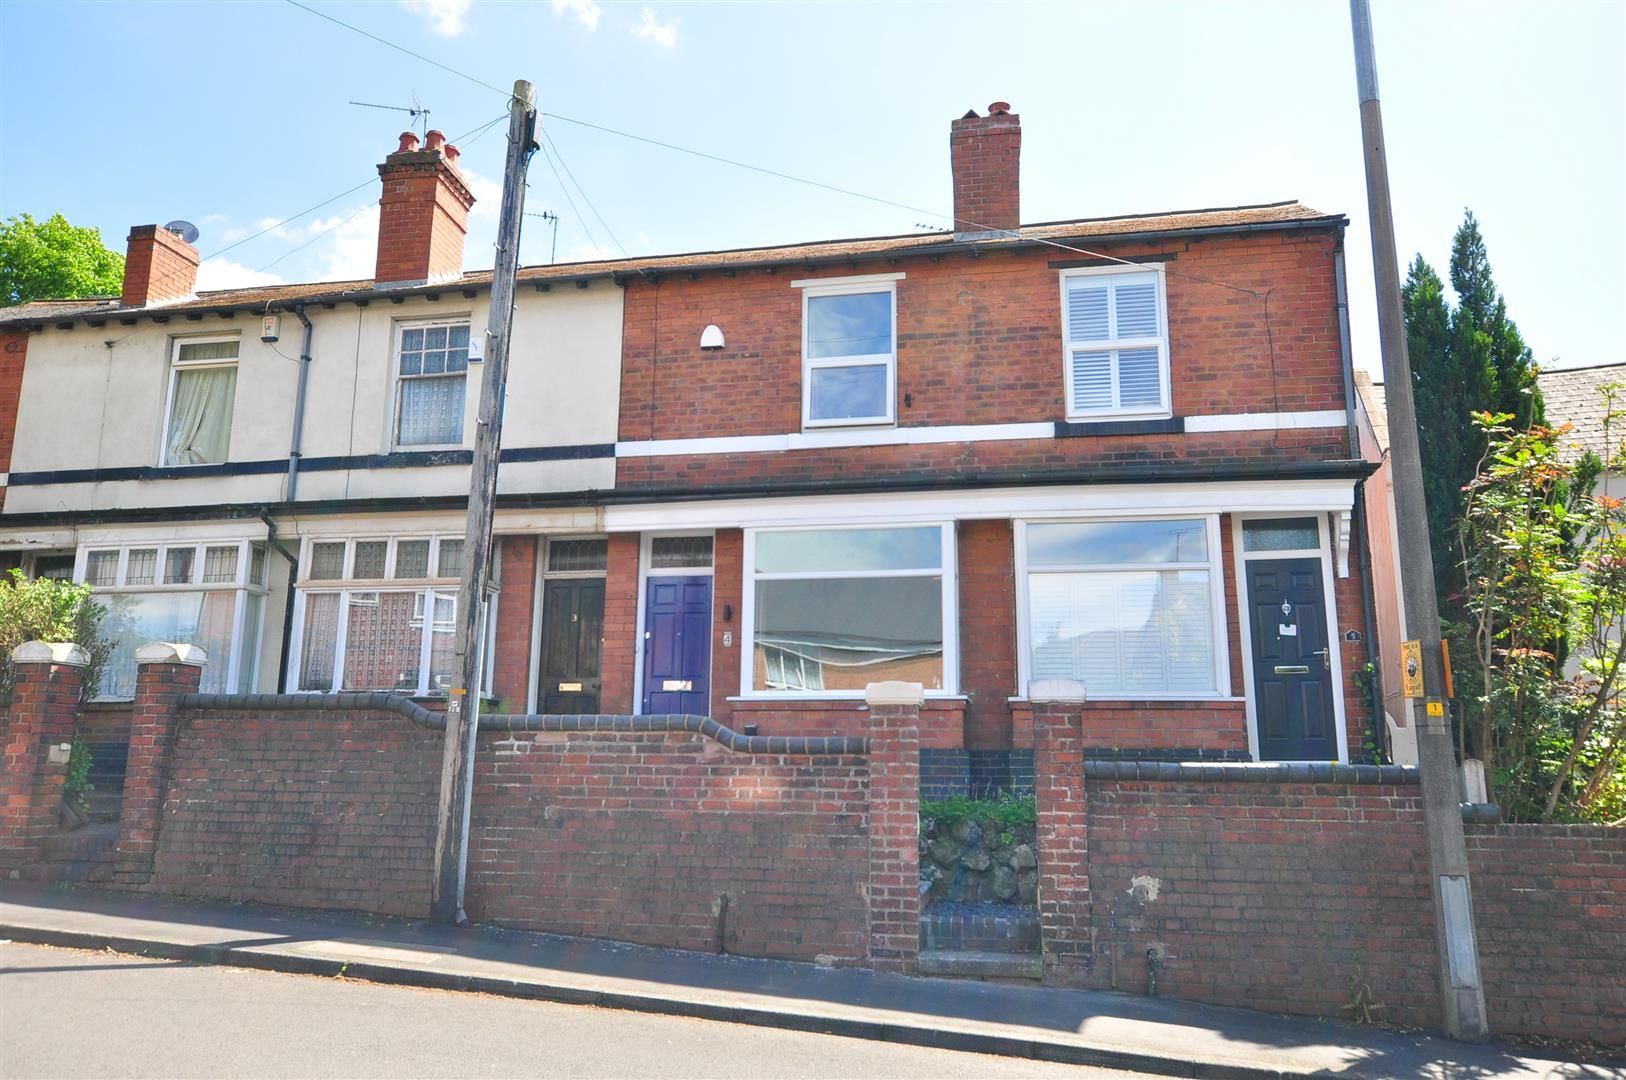 2 bed terraced for sale, B65